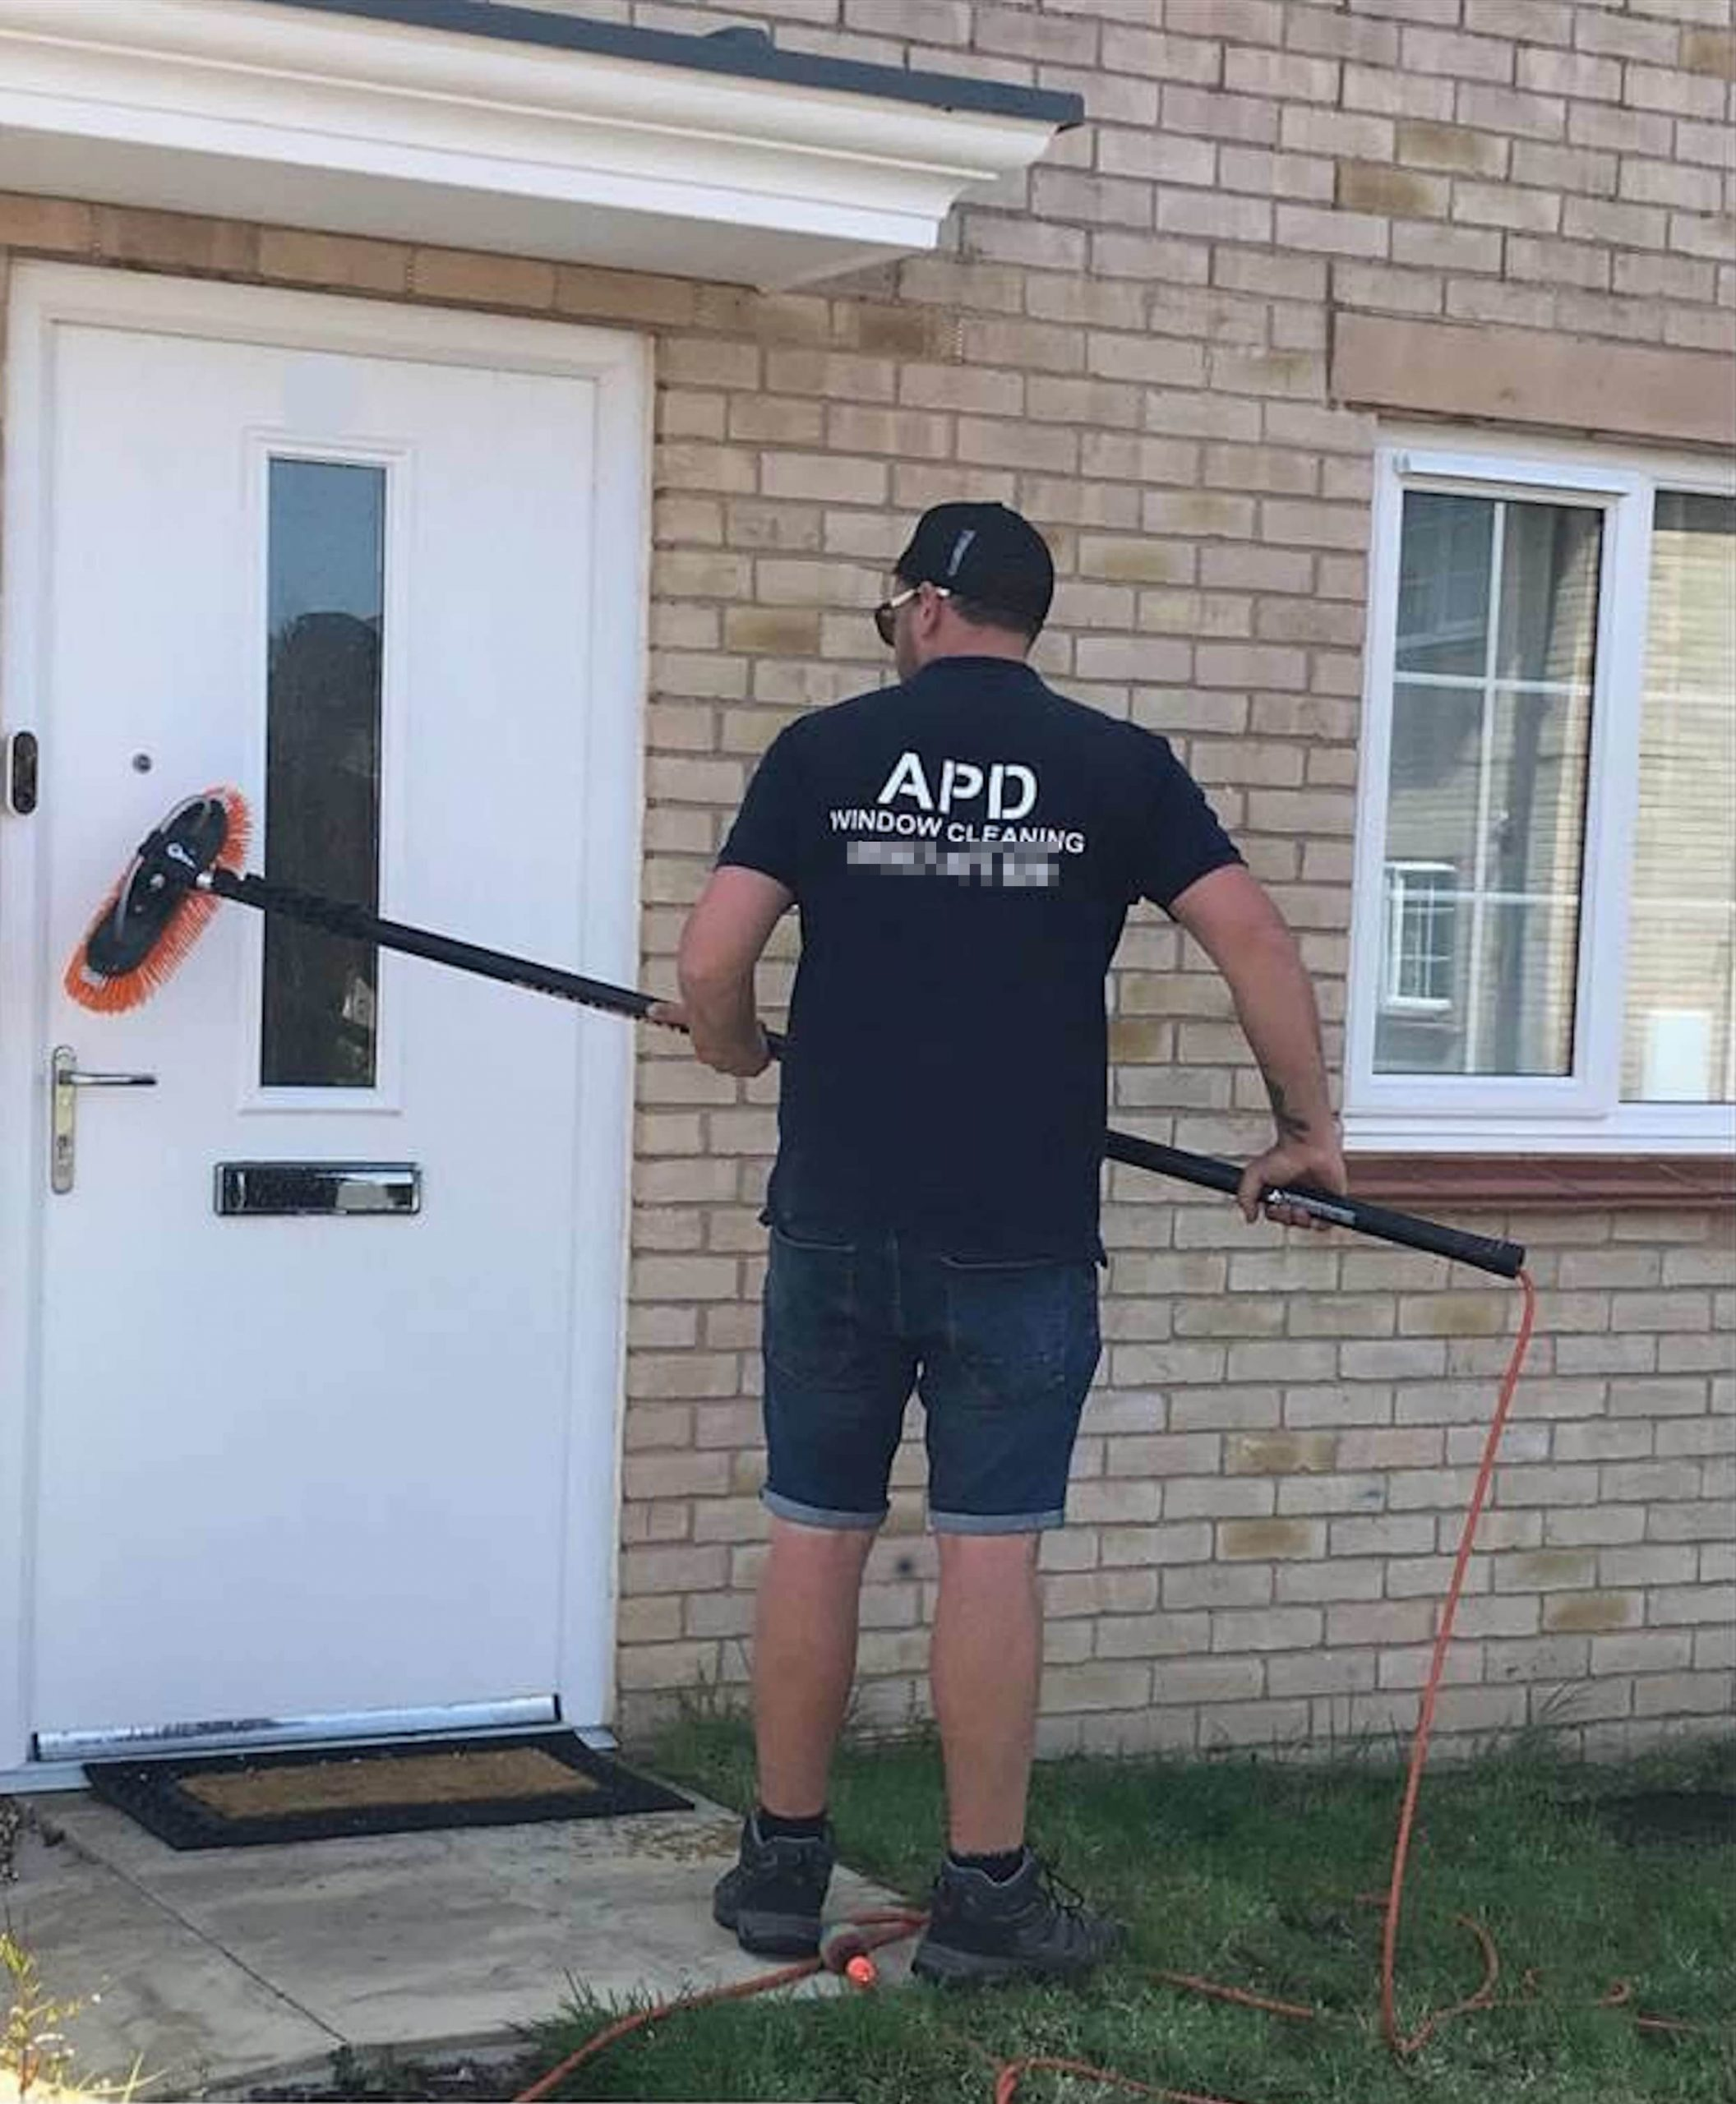 Adrian at work in his window cleaning business- UK News